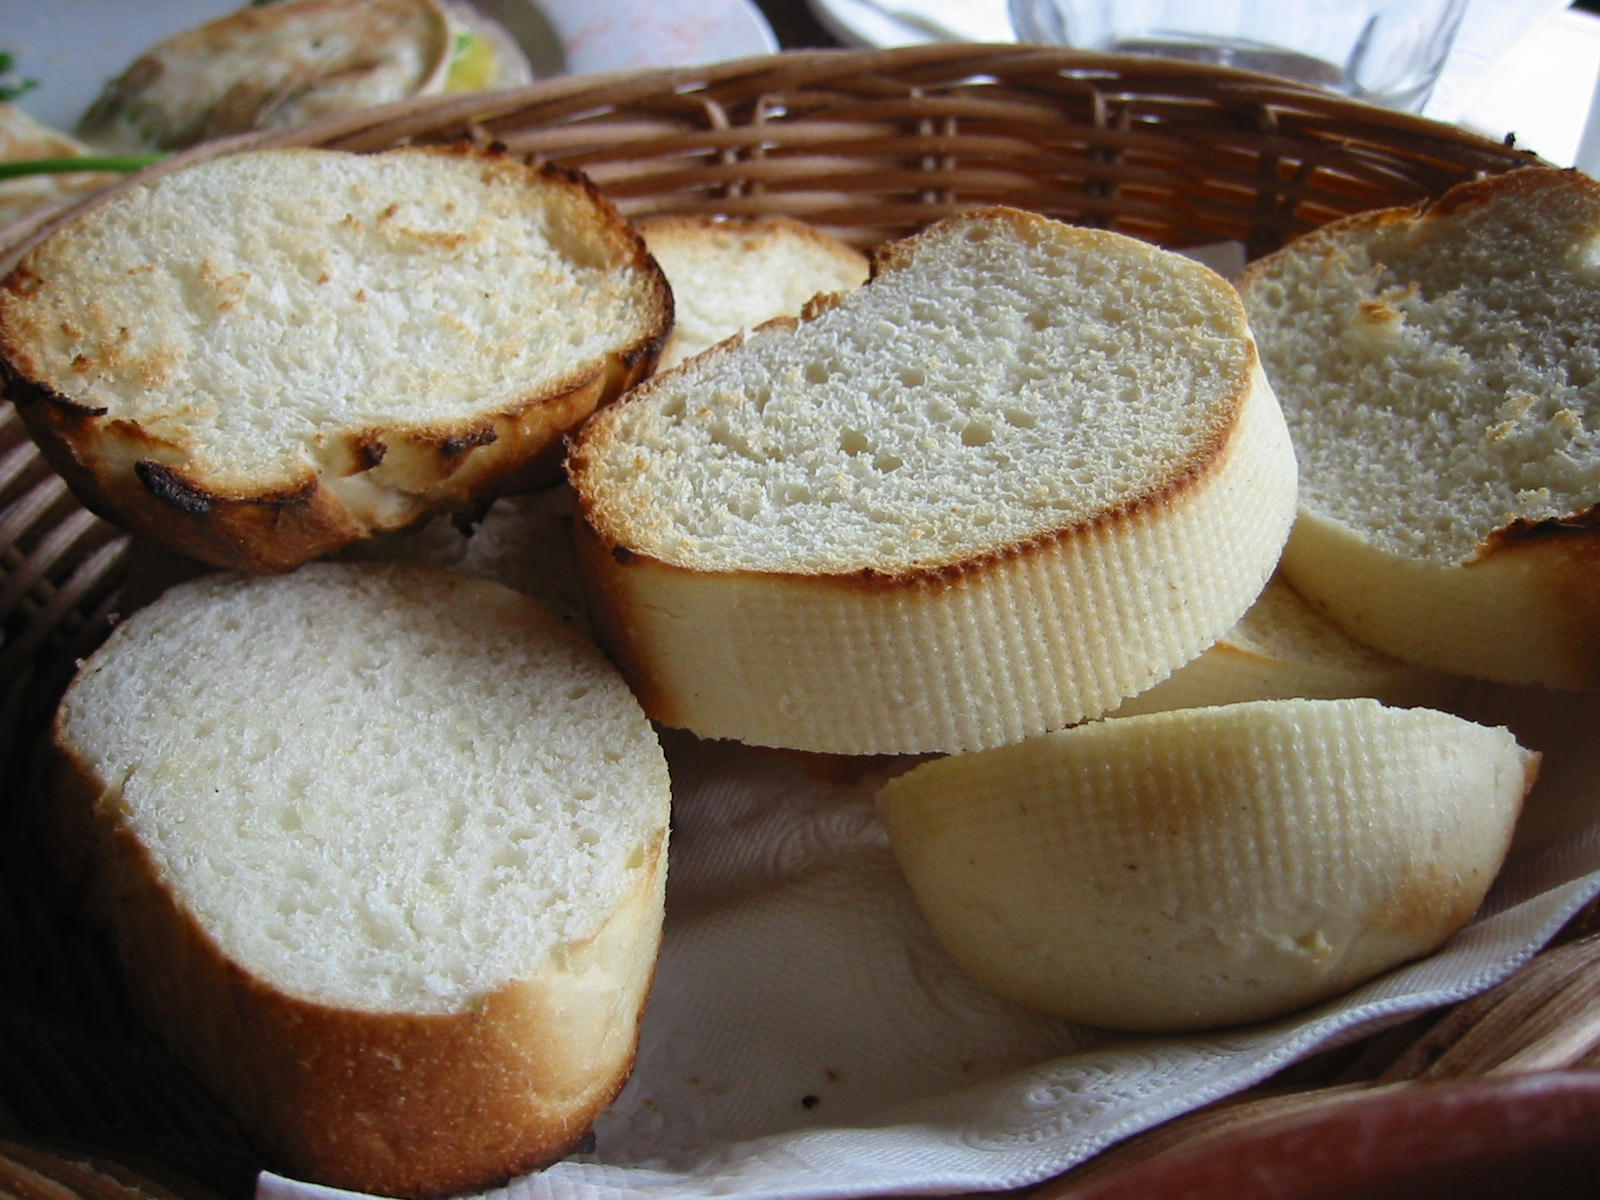 Warm toasted chewy bread